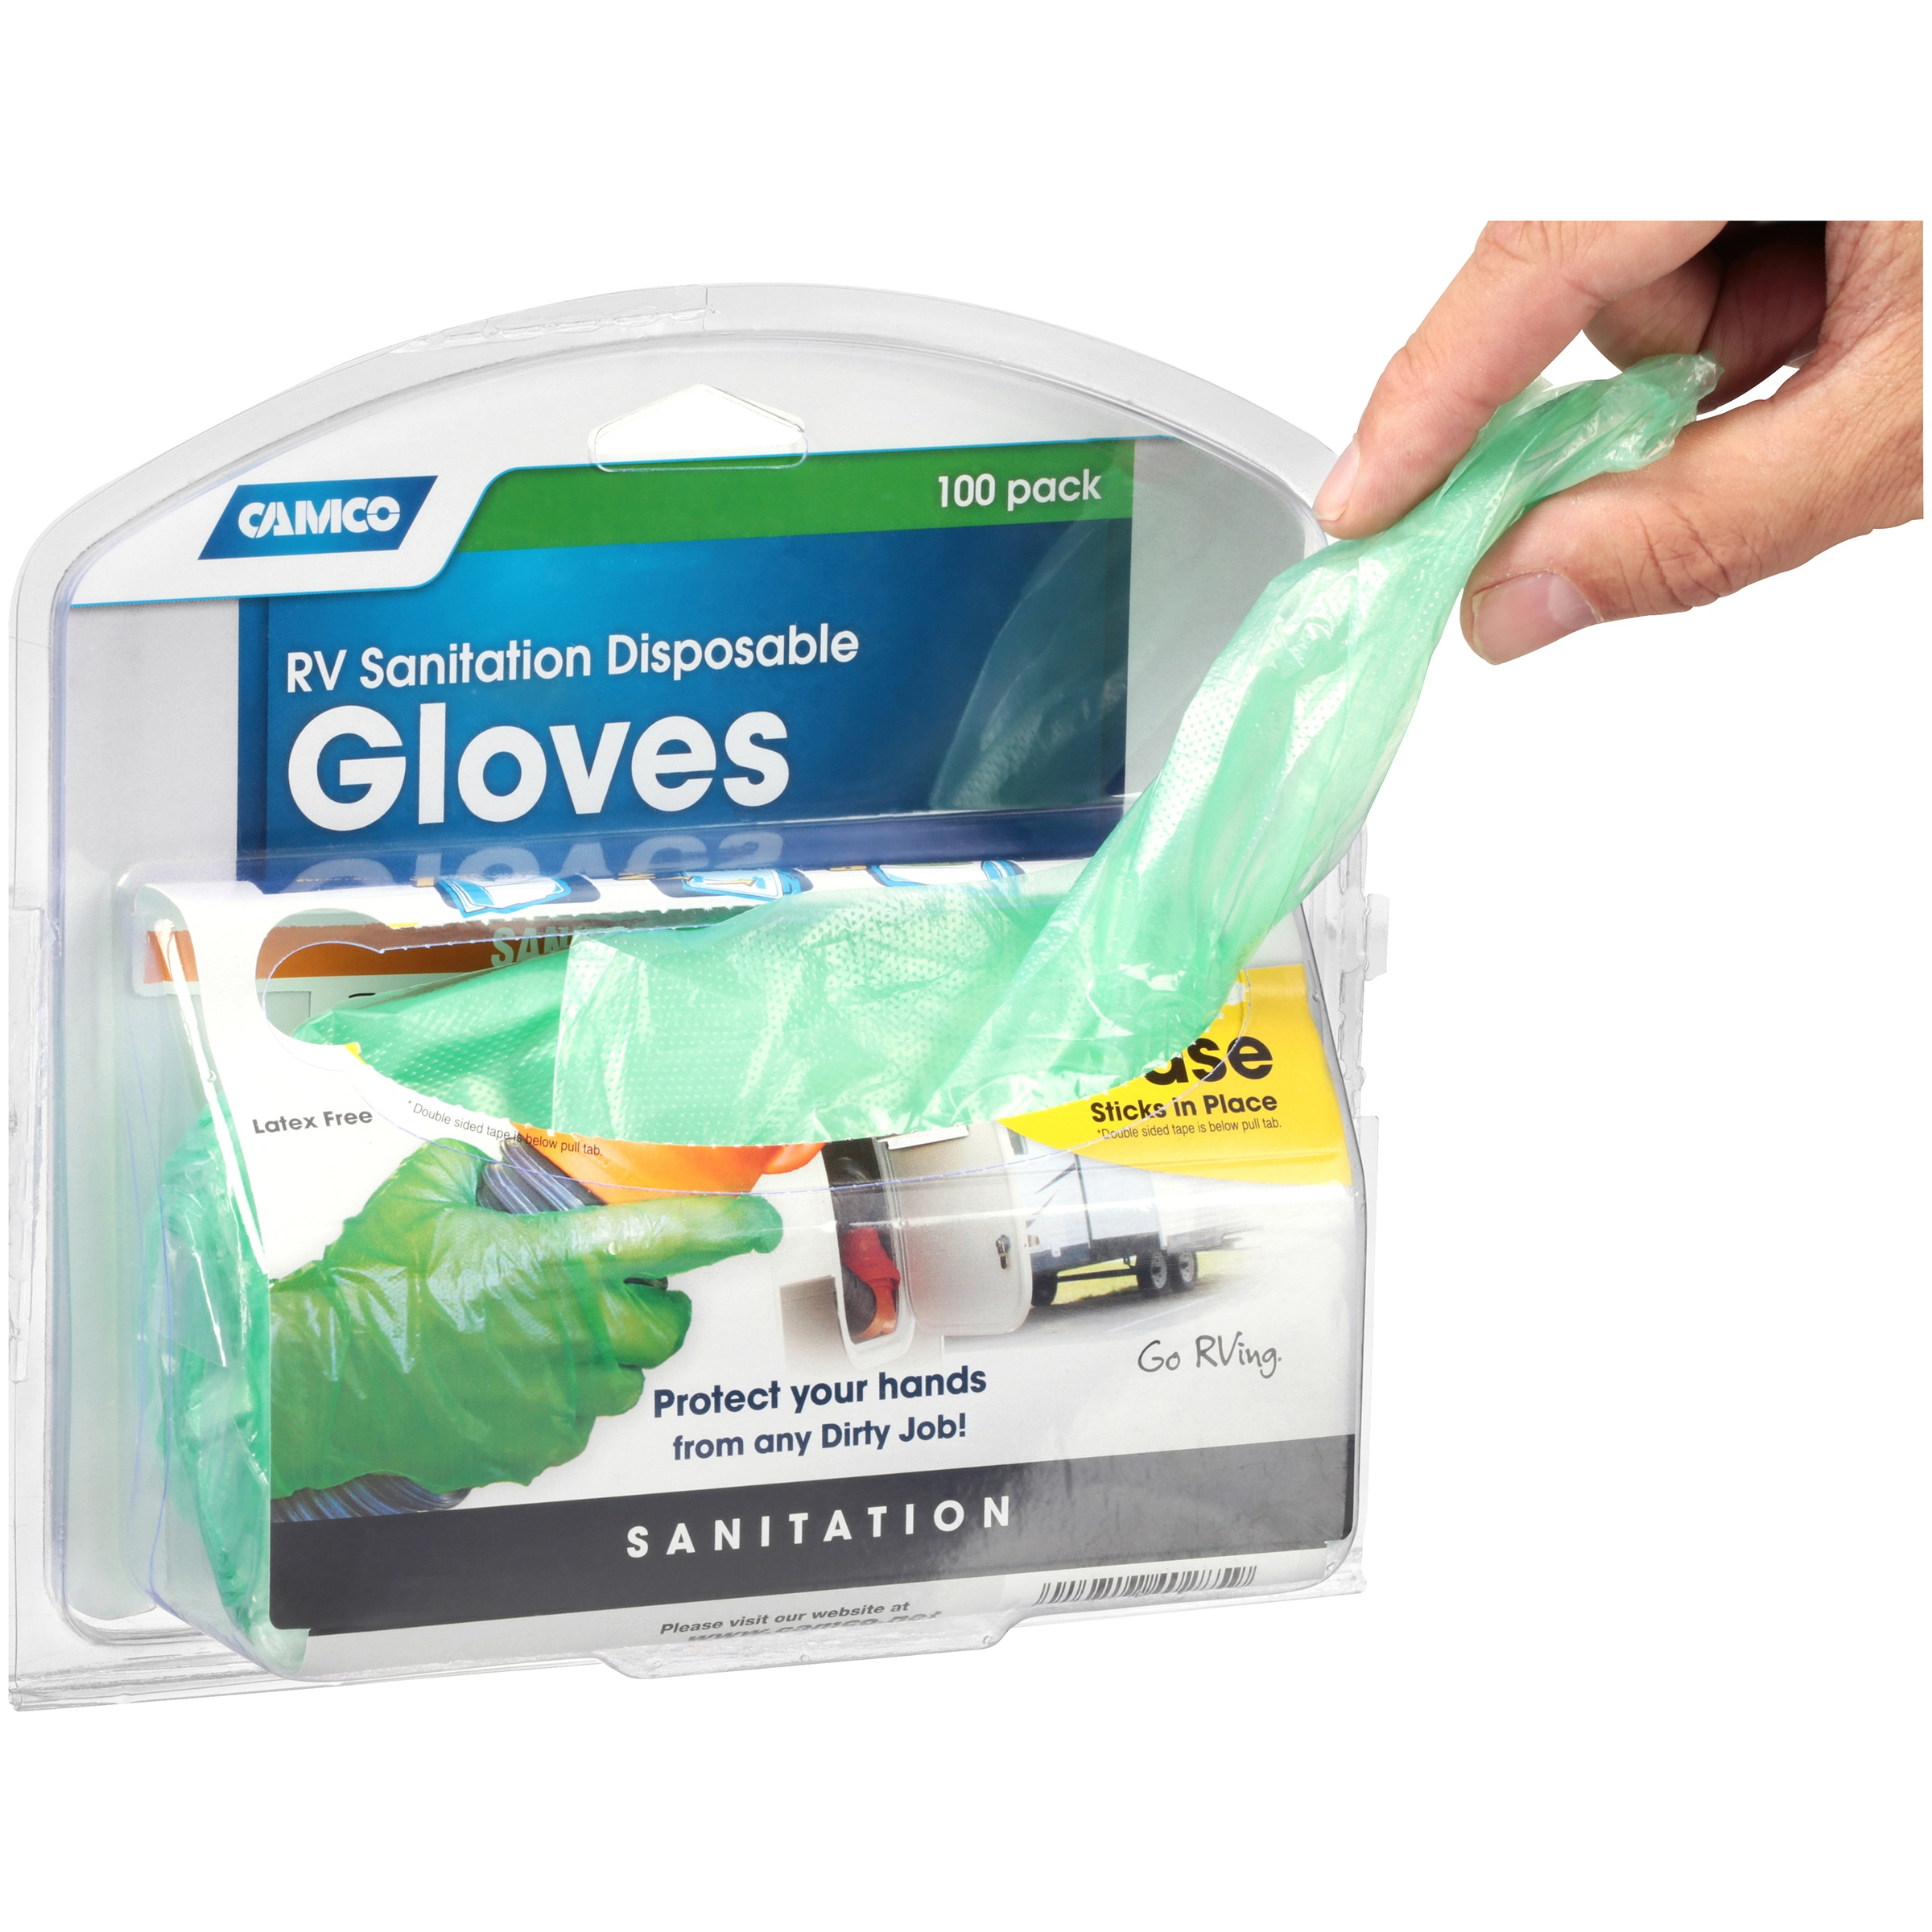 Camco RV Sanitation Disposable Gloves, 100ct